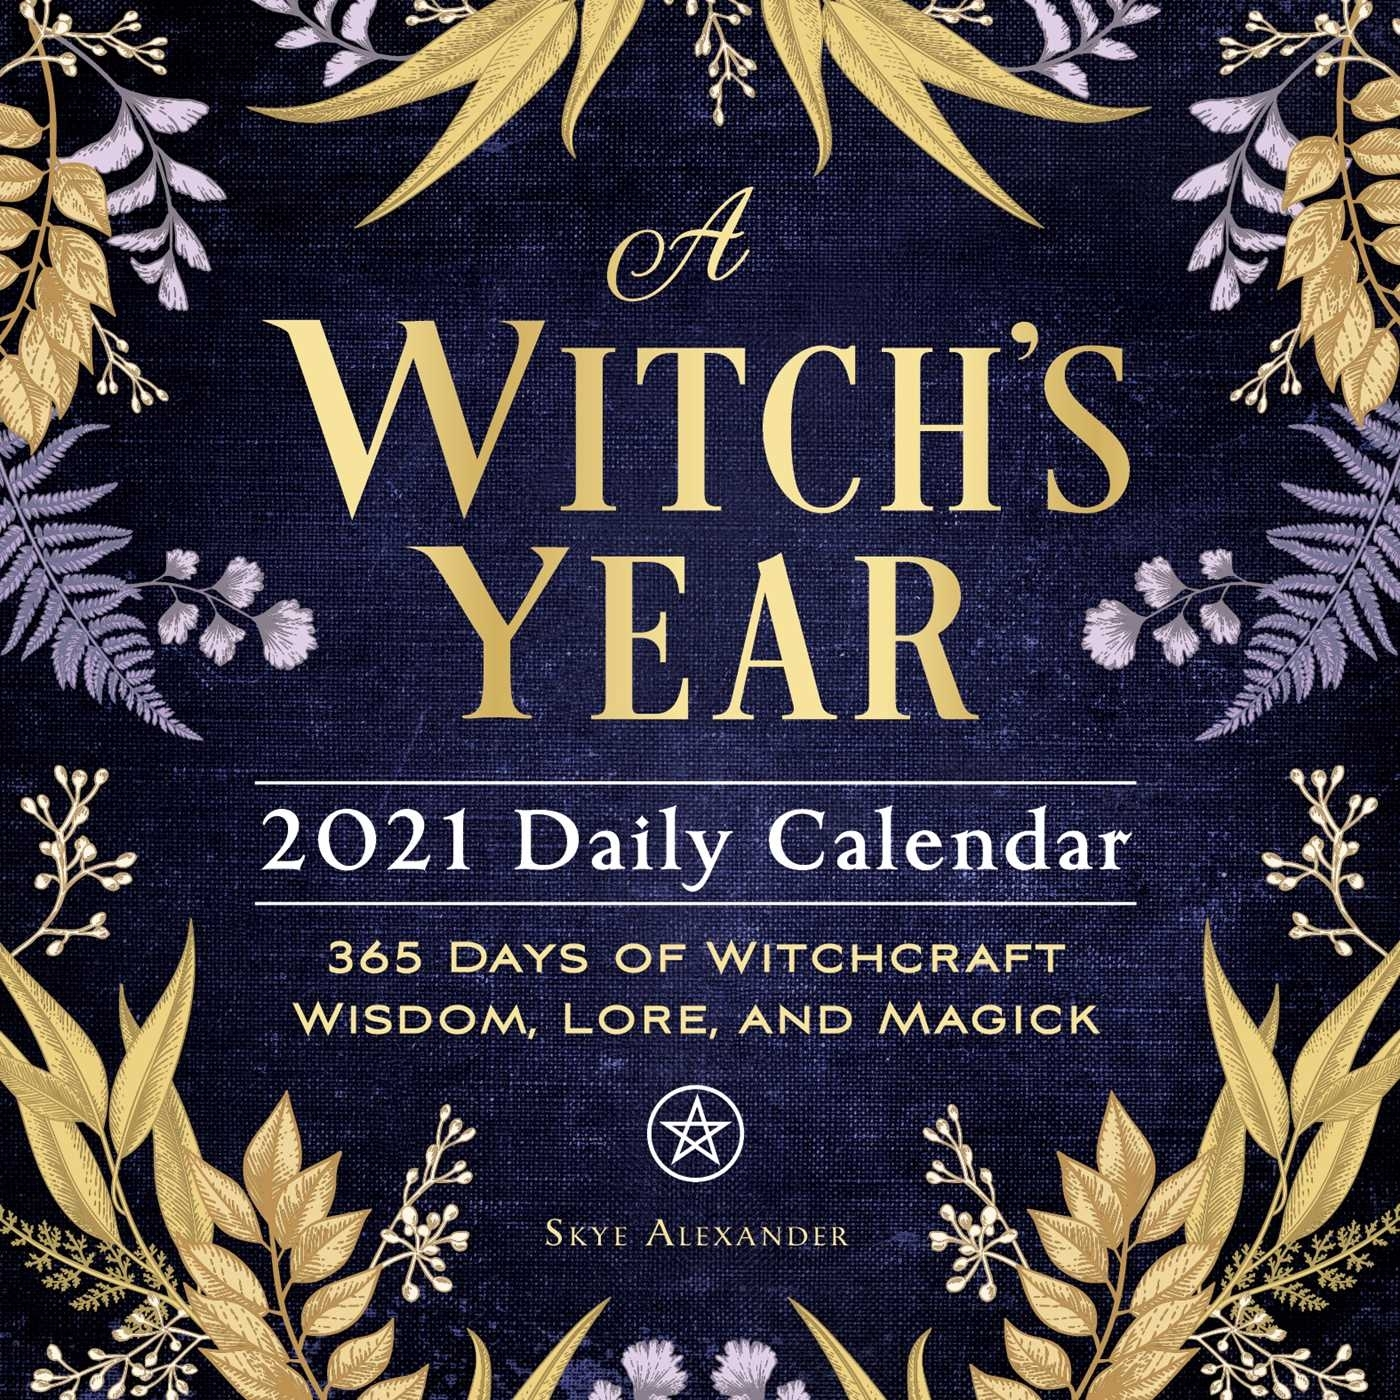 A Witch'S Year 2021 Daily Calendar - Book Summary & Video